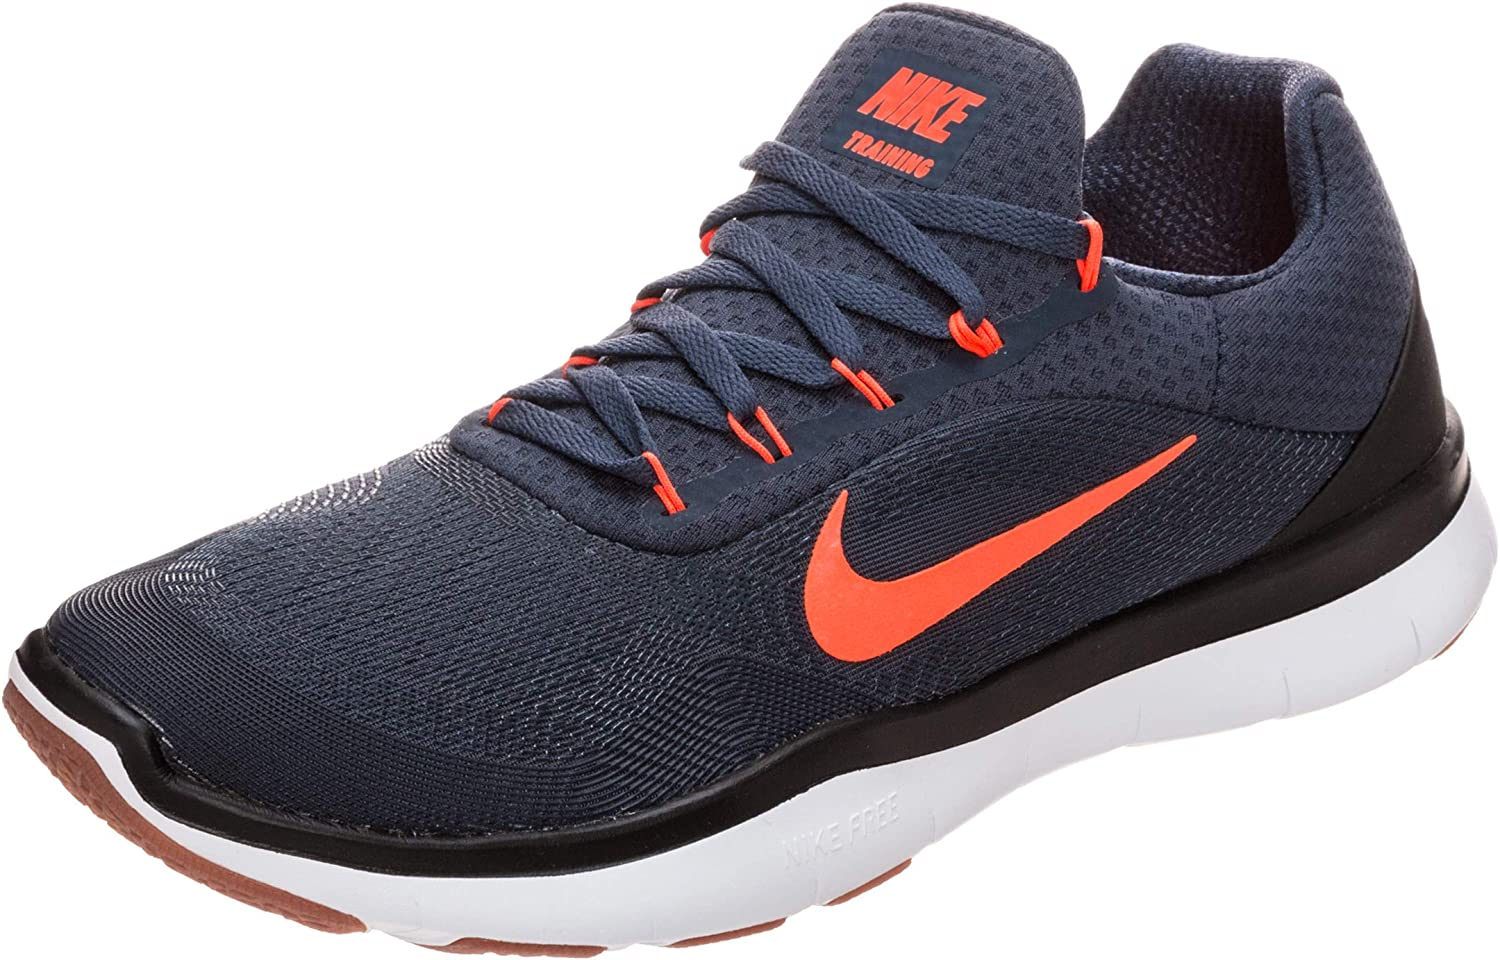 Max 68% OFF Nike Men's Shoes Cheap sale Fitness